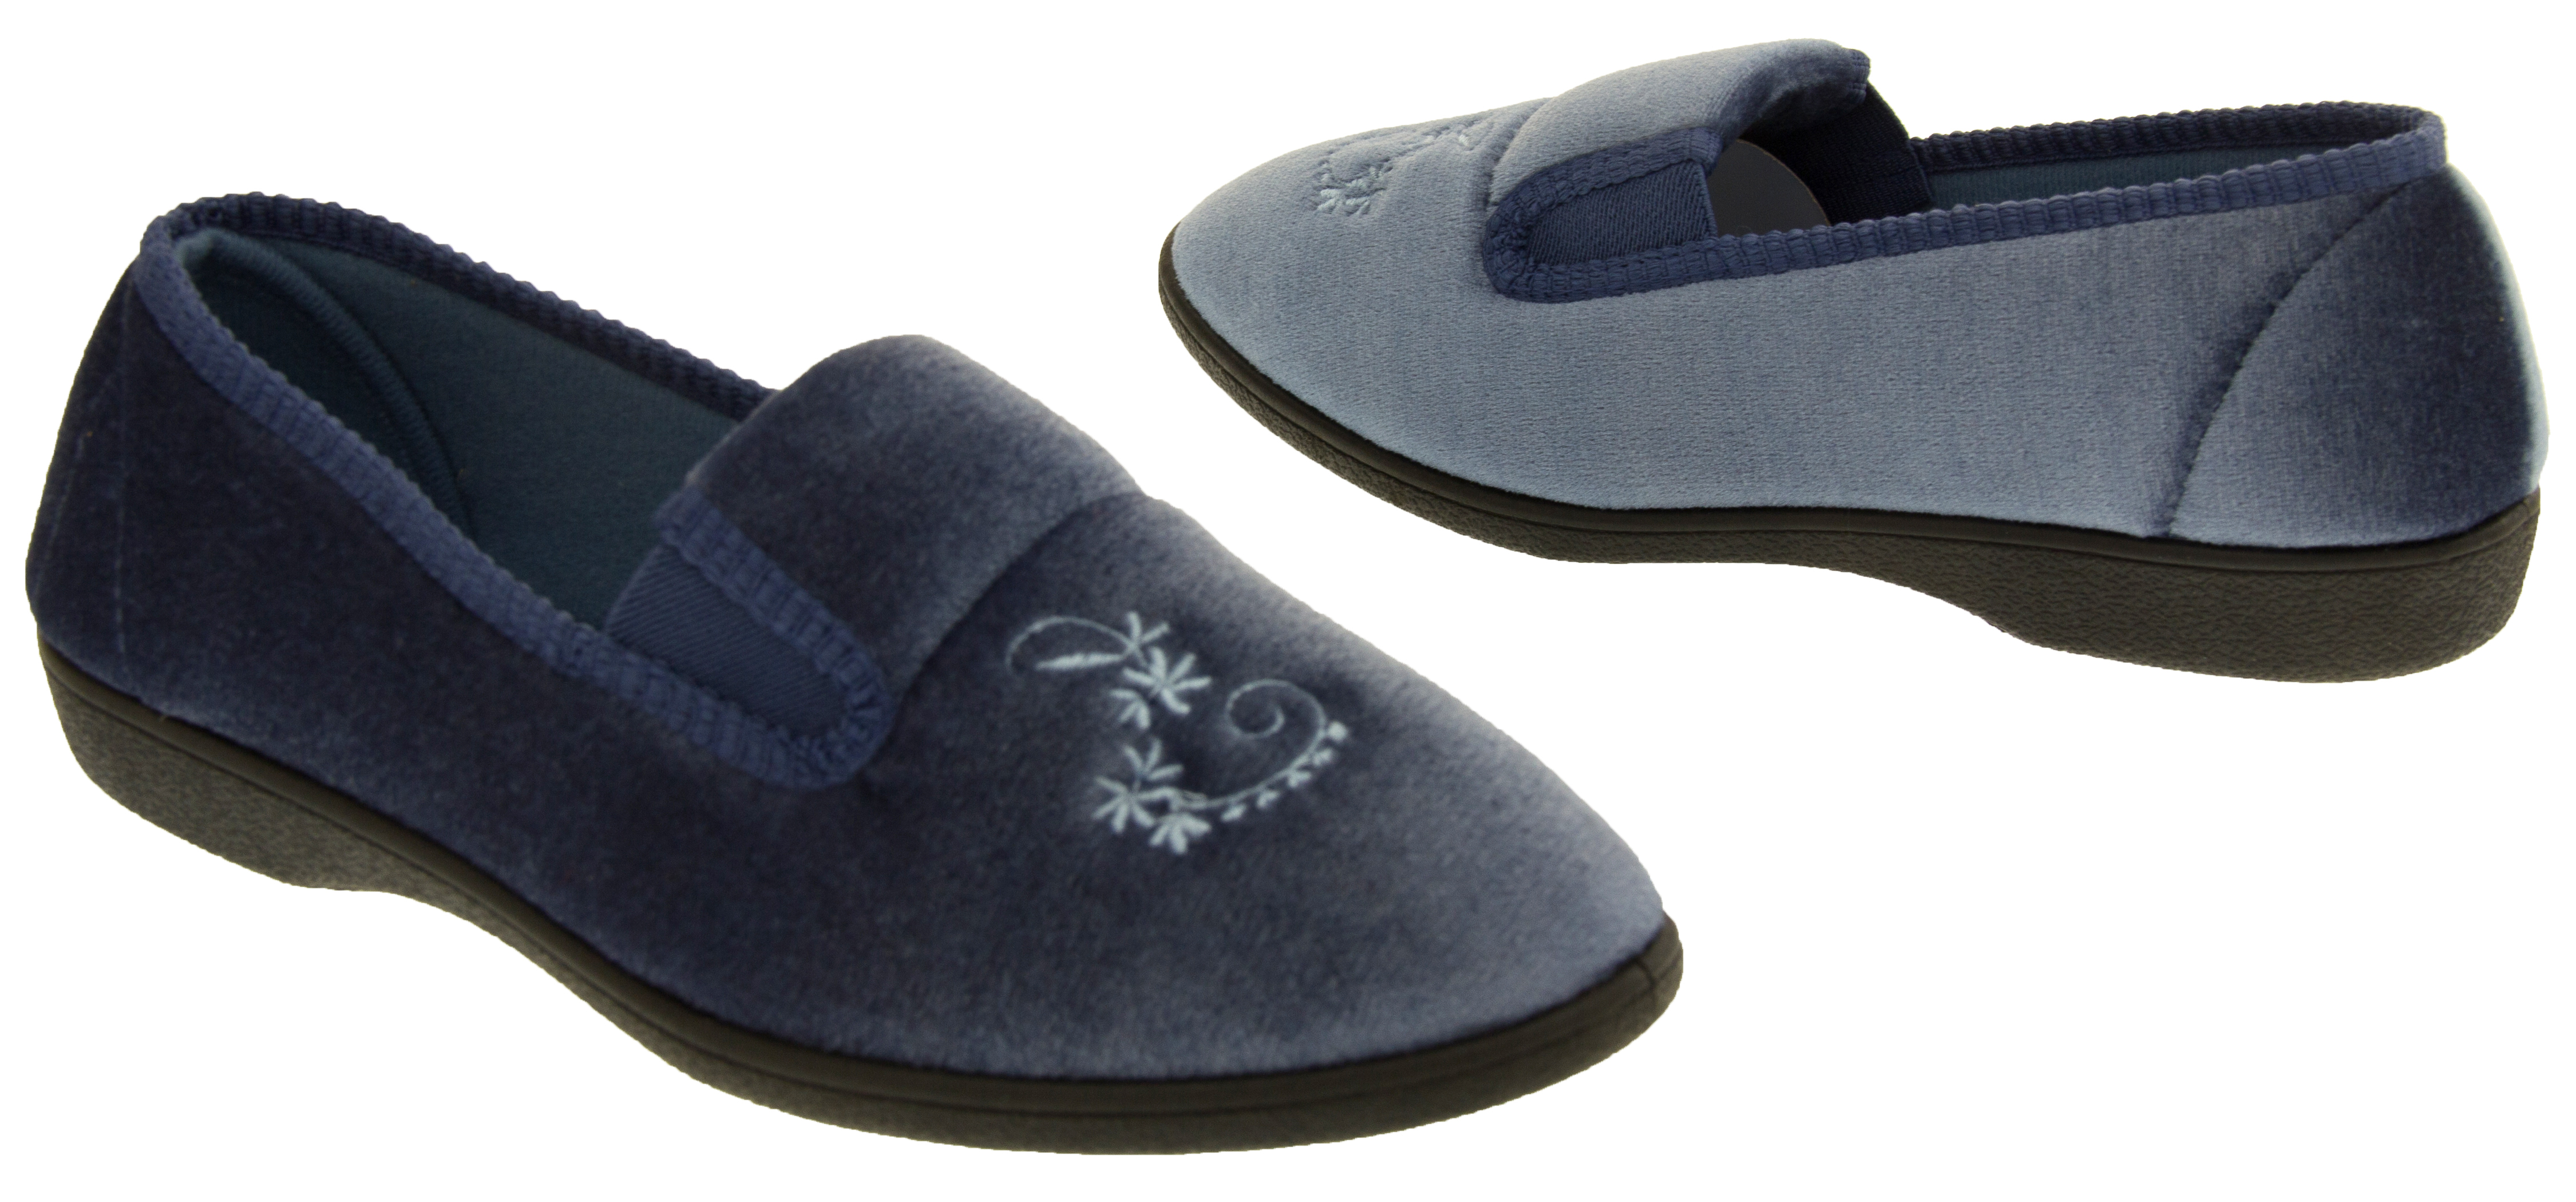 Ladies Comfort Wedge Slippers Womens Full Back Slipper Shoes Size 3 4 5 6 7 8